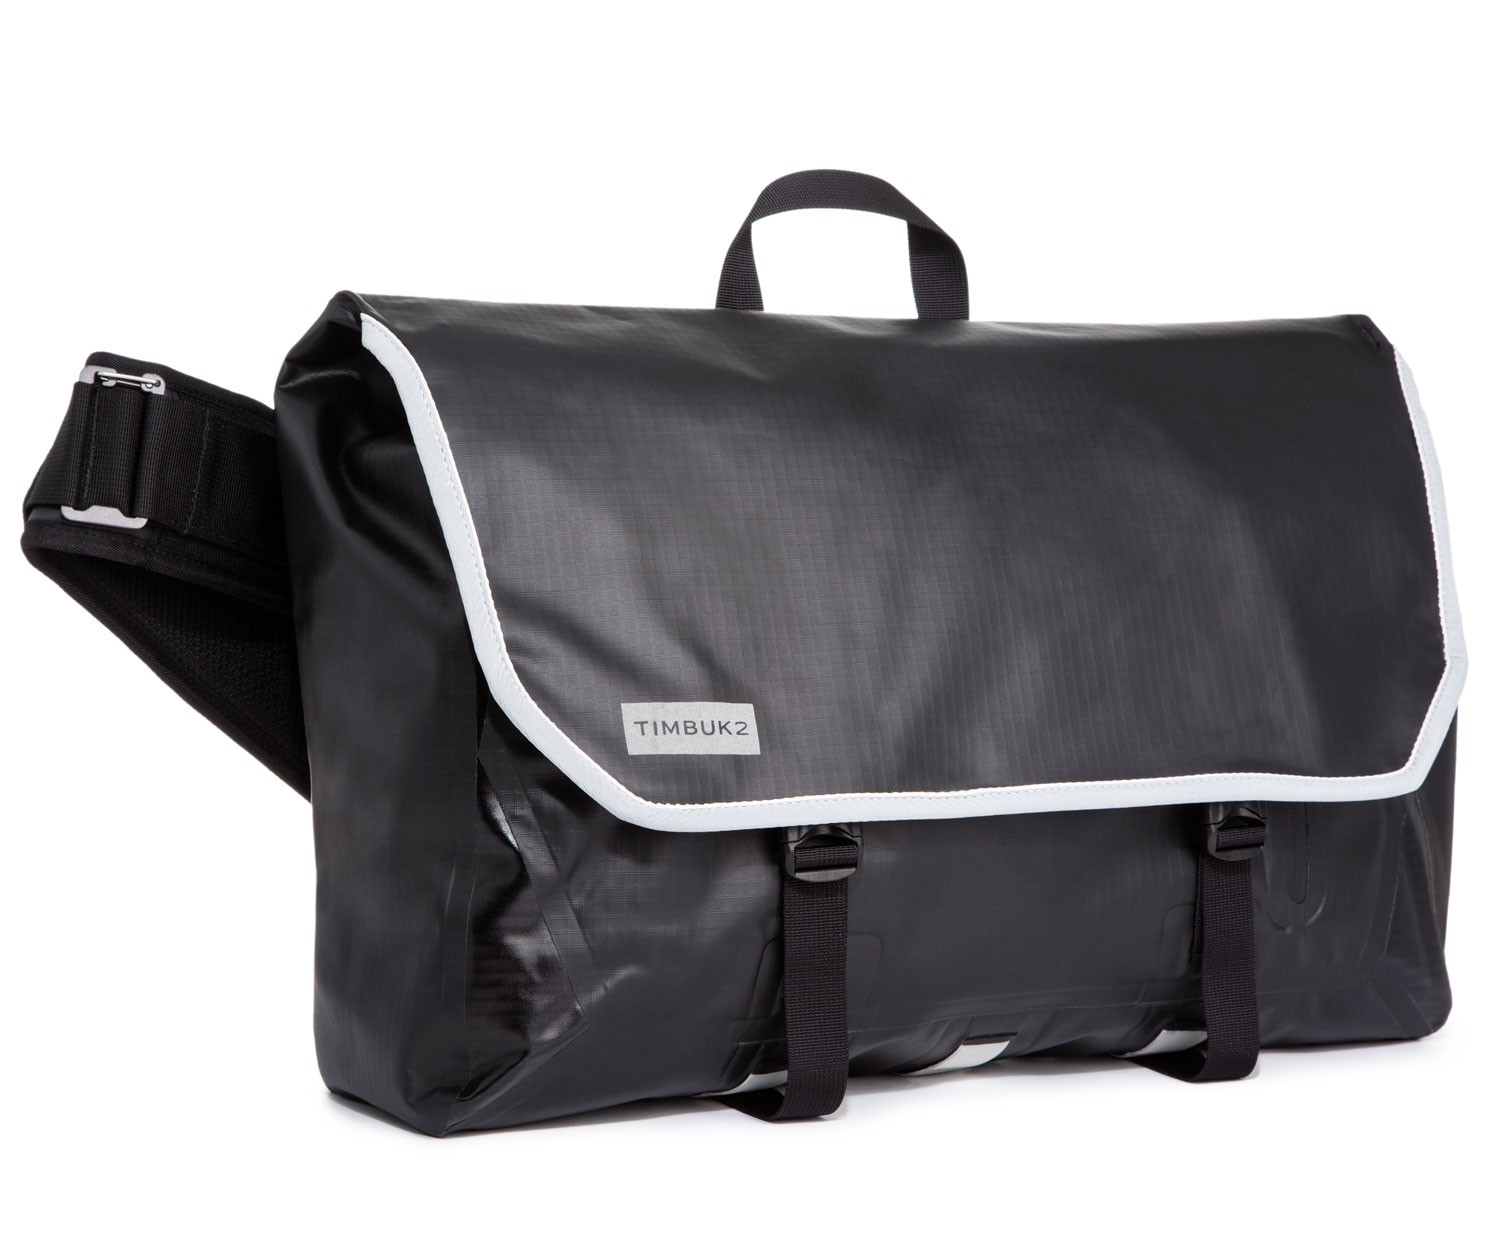 Especial Primo Waterproof Messenger Bag | Timbuk2 Bags